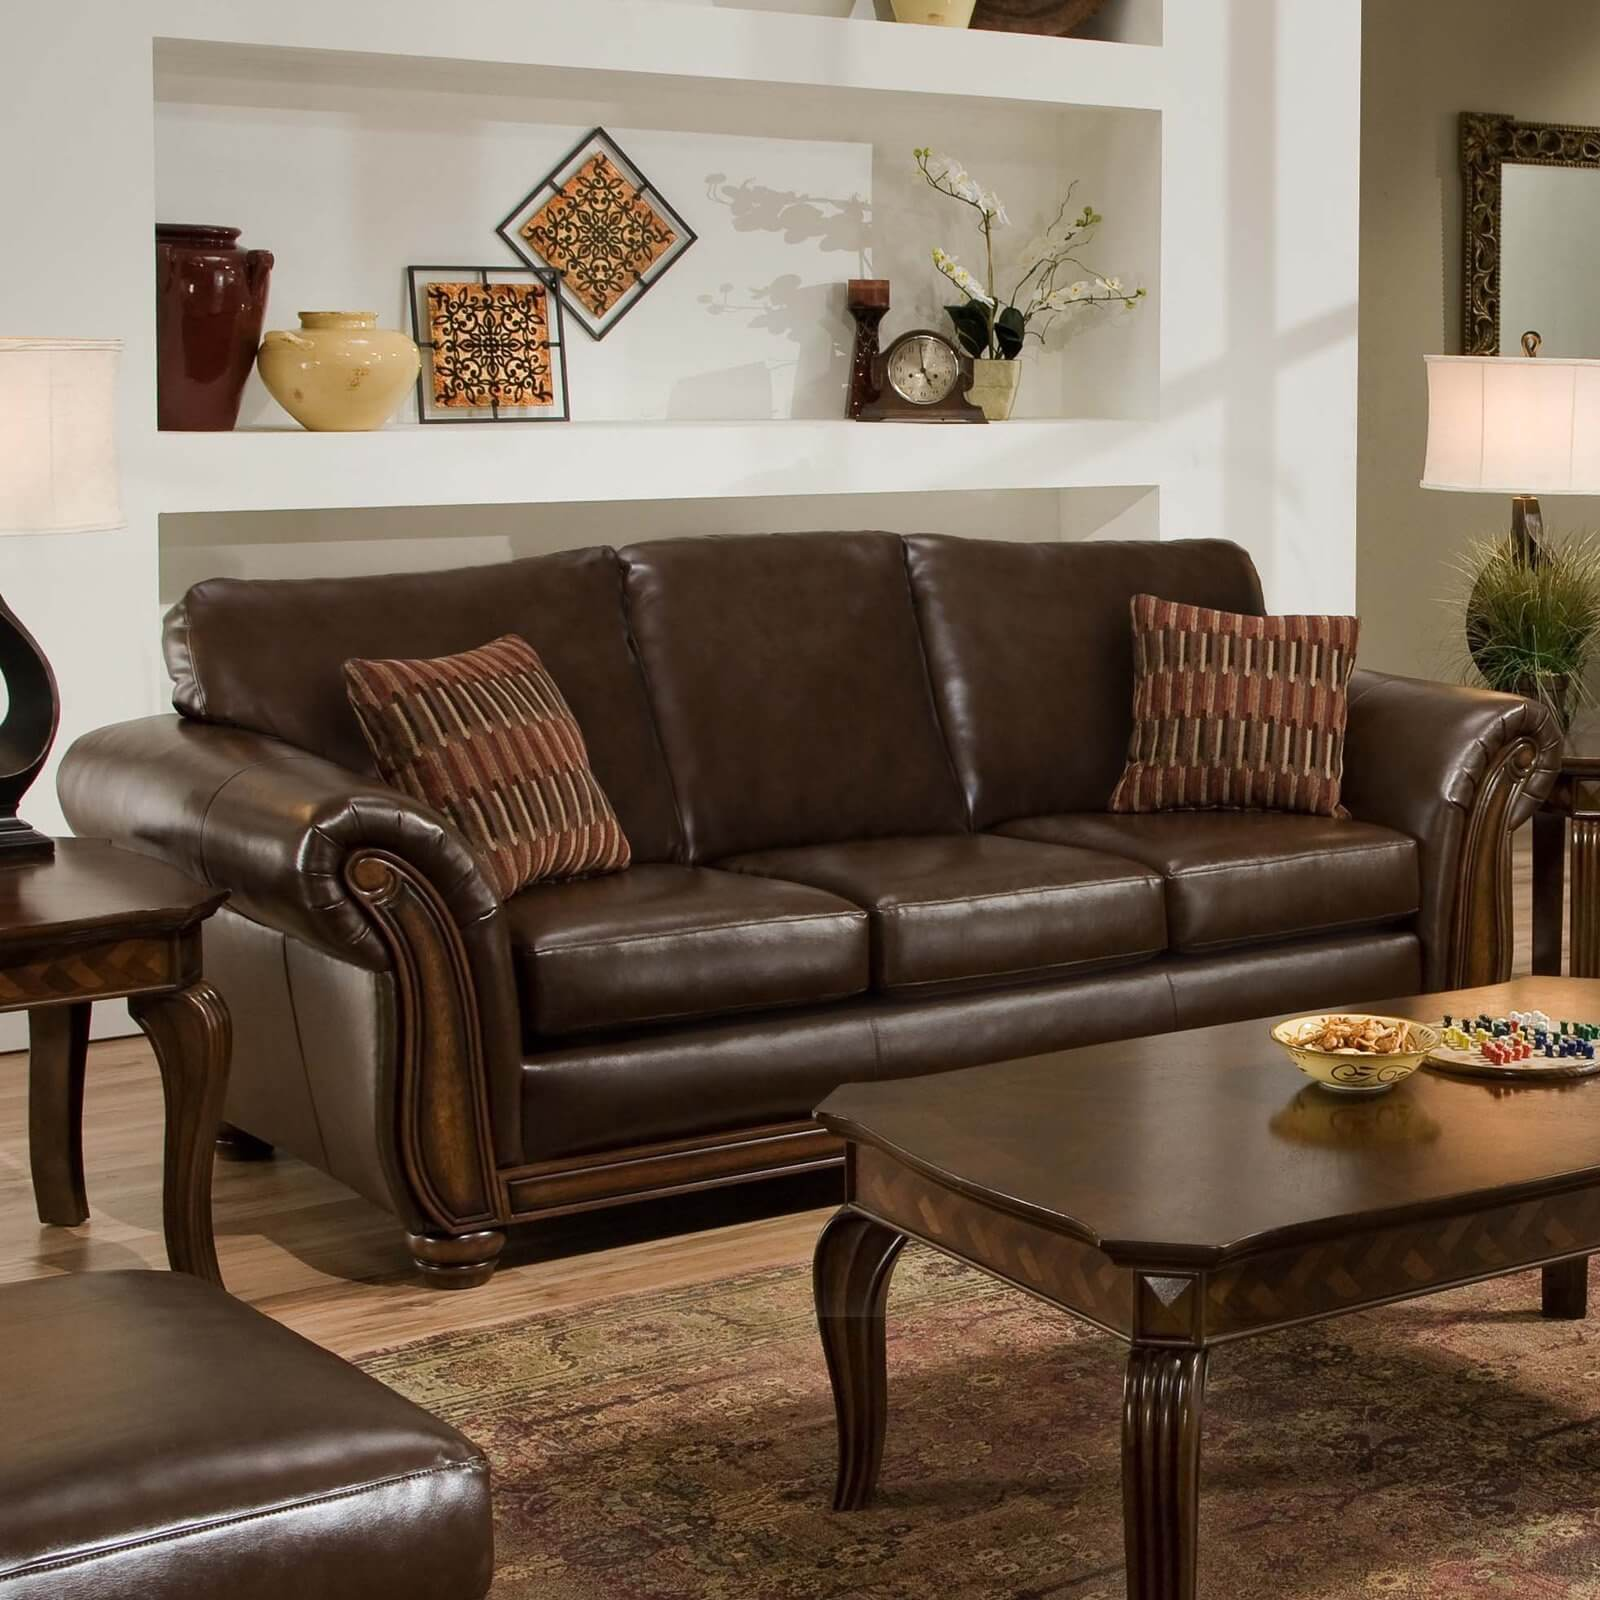 27 Different Types of Accent Chairs (Ultimate Buying Guide) -